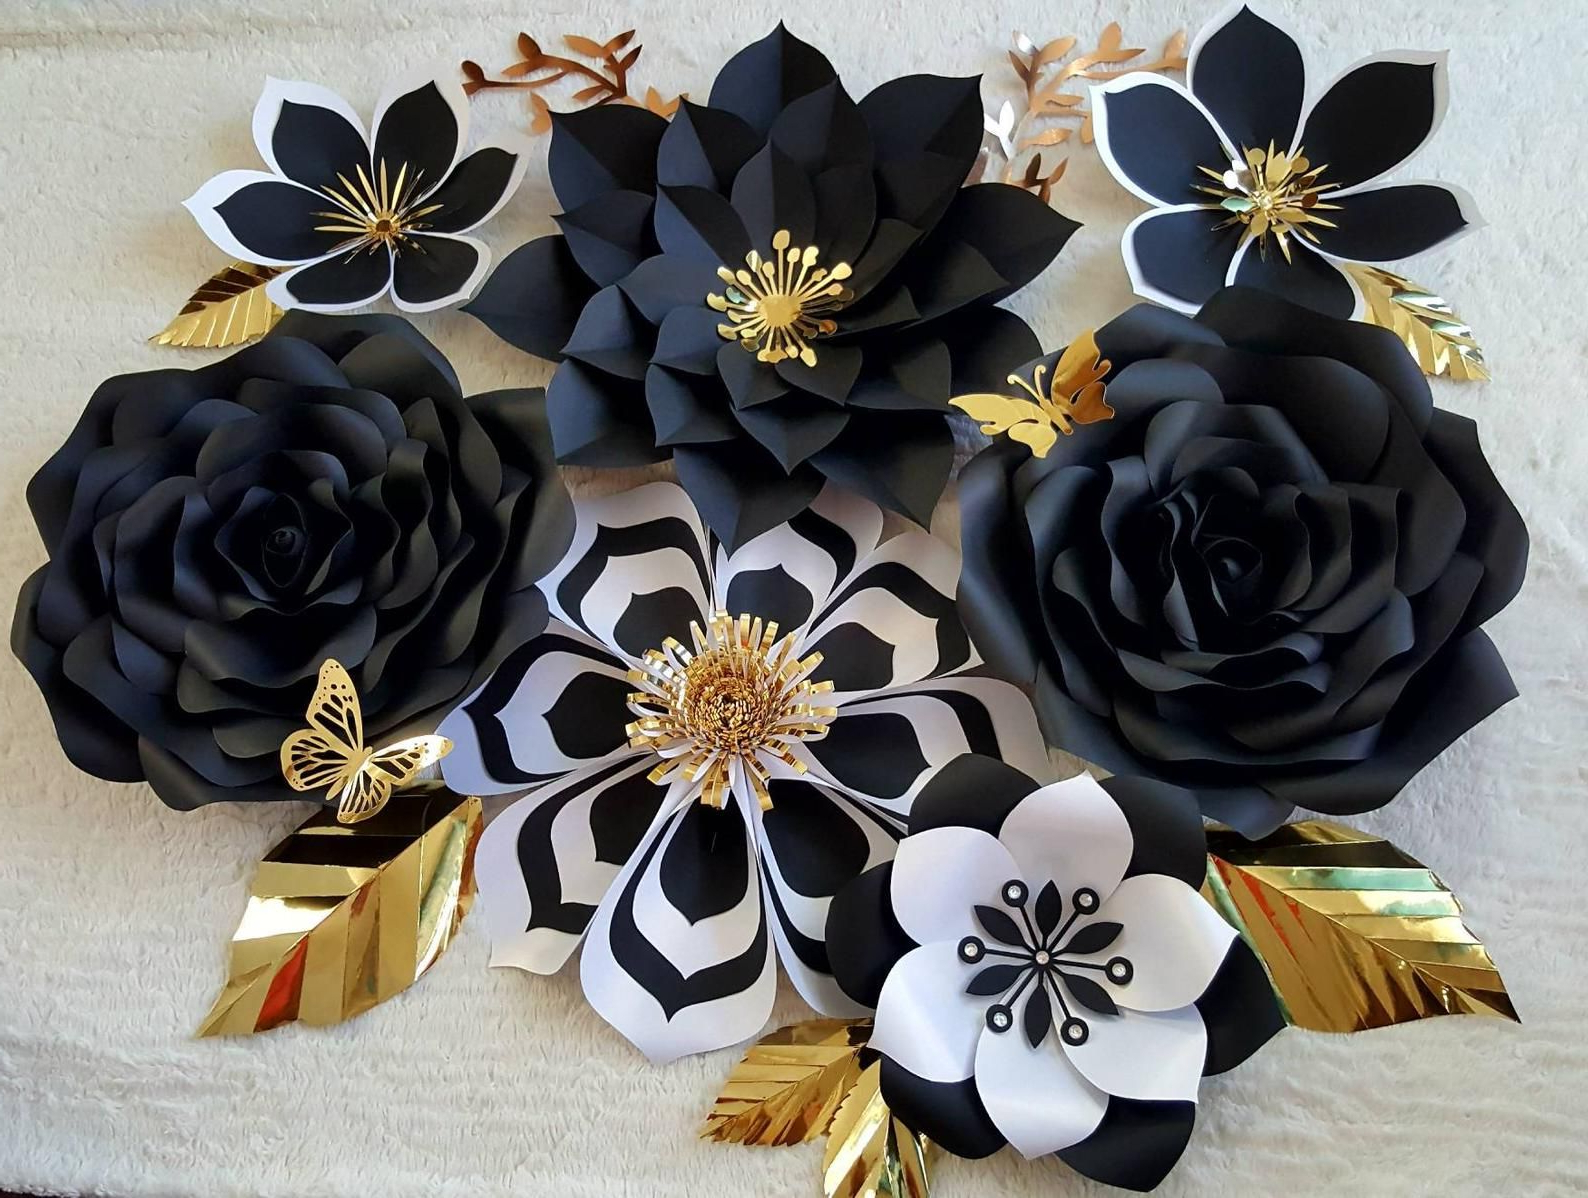 Whimsical Flower Wall Décor With Regard To Most Popular Whimsical Elegant Black And White Paper Flower Wall Decor (View 5 of 20)